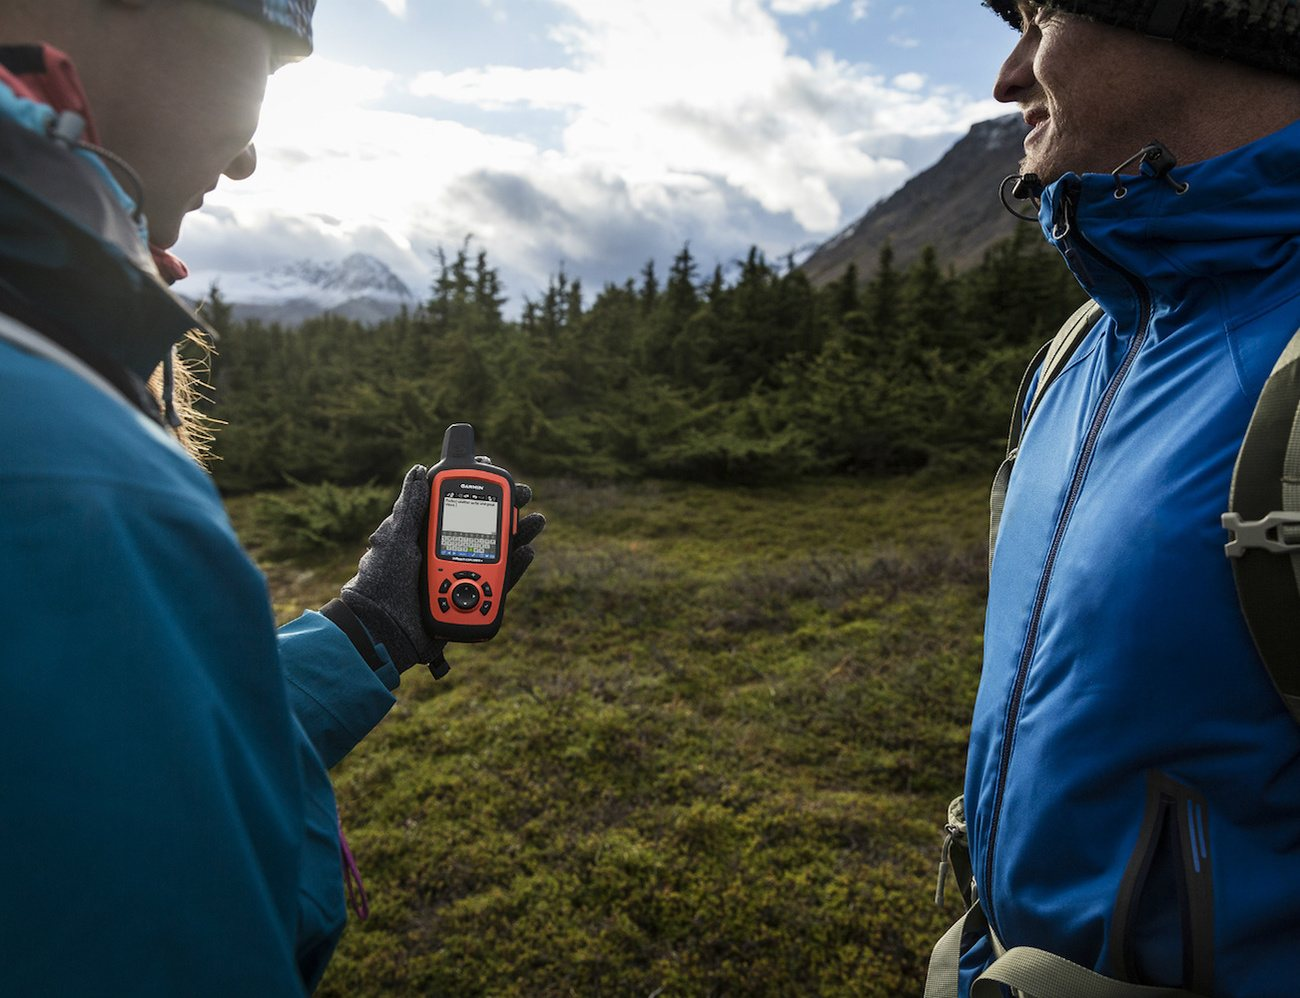 Garmin inReach Explorer+ Satellite Communicator